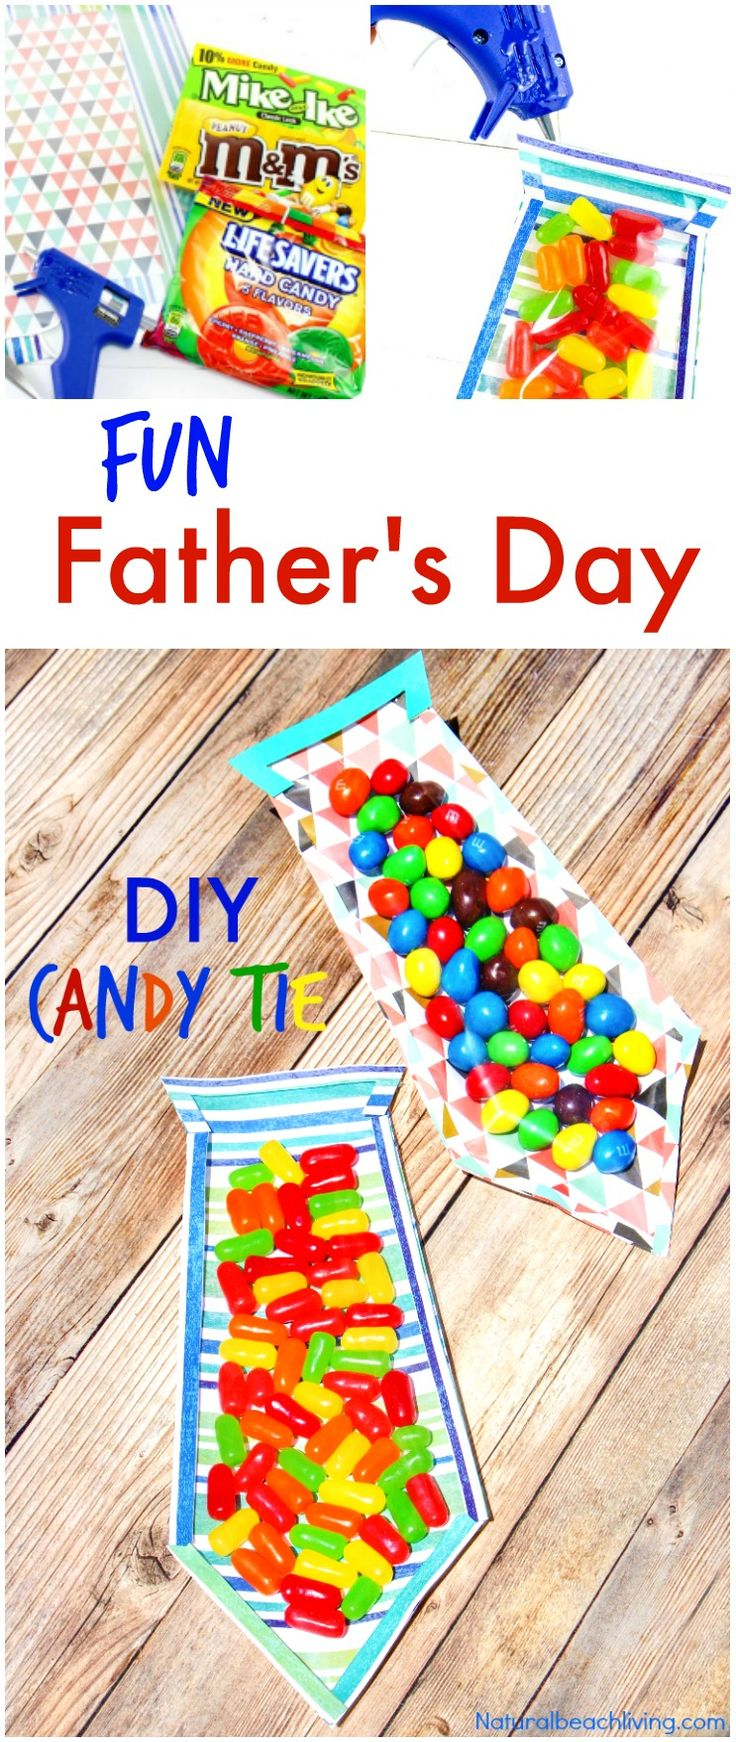 The Best DIY Father's Day Card, Father's Day Candy Tie, Great craft idea for kids, The Perfect DIY Father's Day Tie, Handmade Gifts are the best